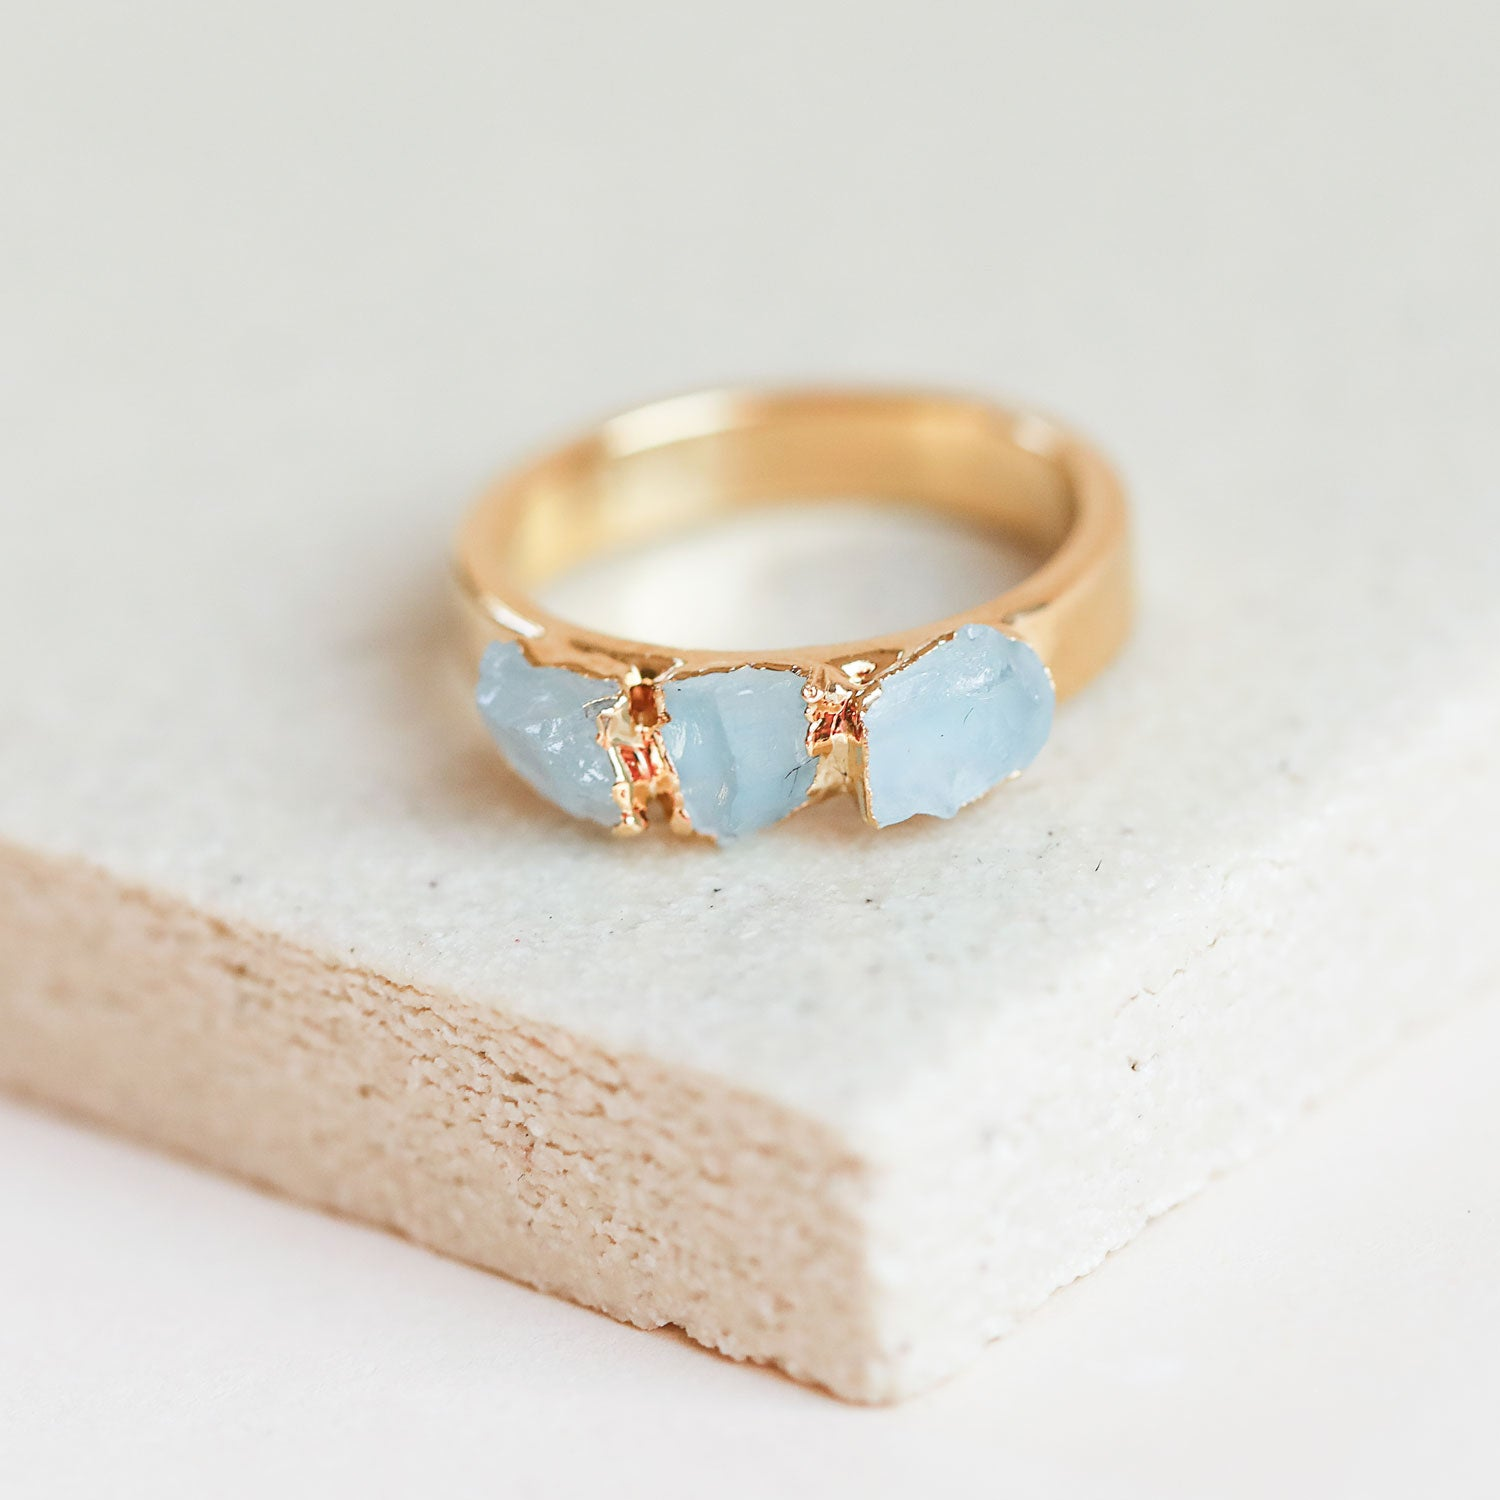 Natural Aquamarine Stacking Ring by Dani Barbe